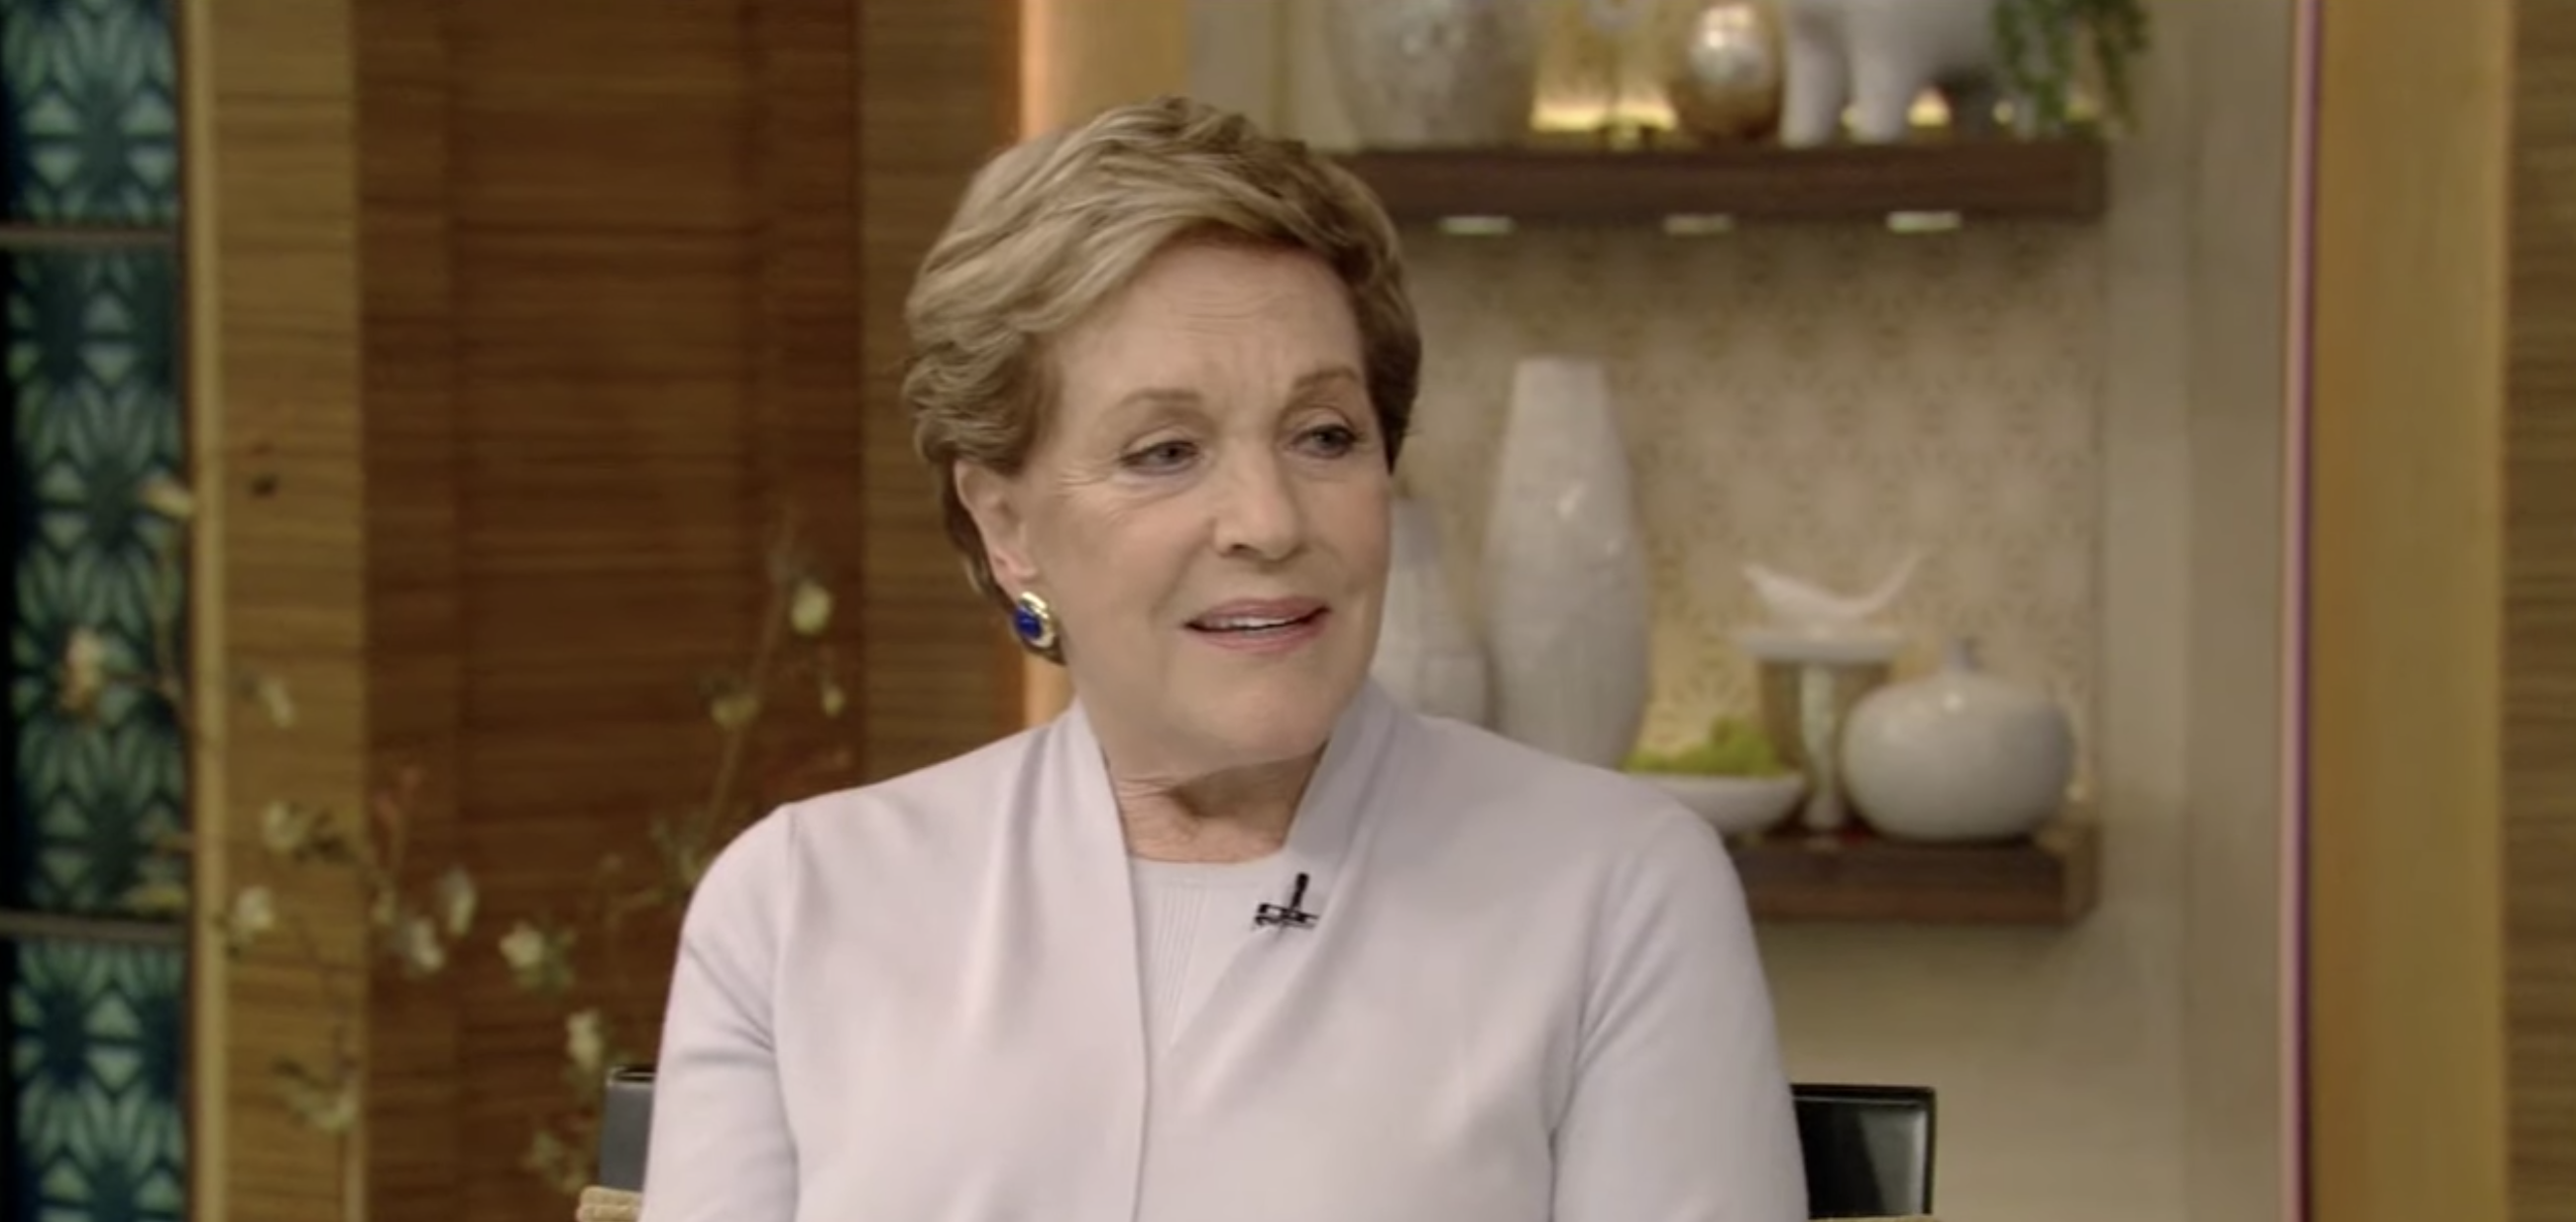 Julie Andrews Says She Came Crashing Down While Filming Mary Poppins